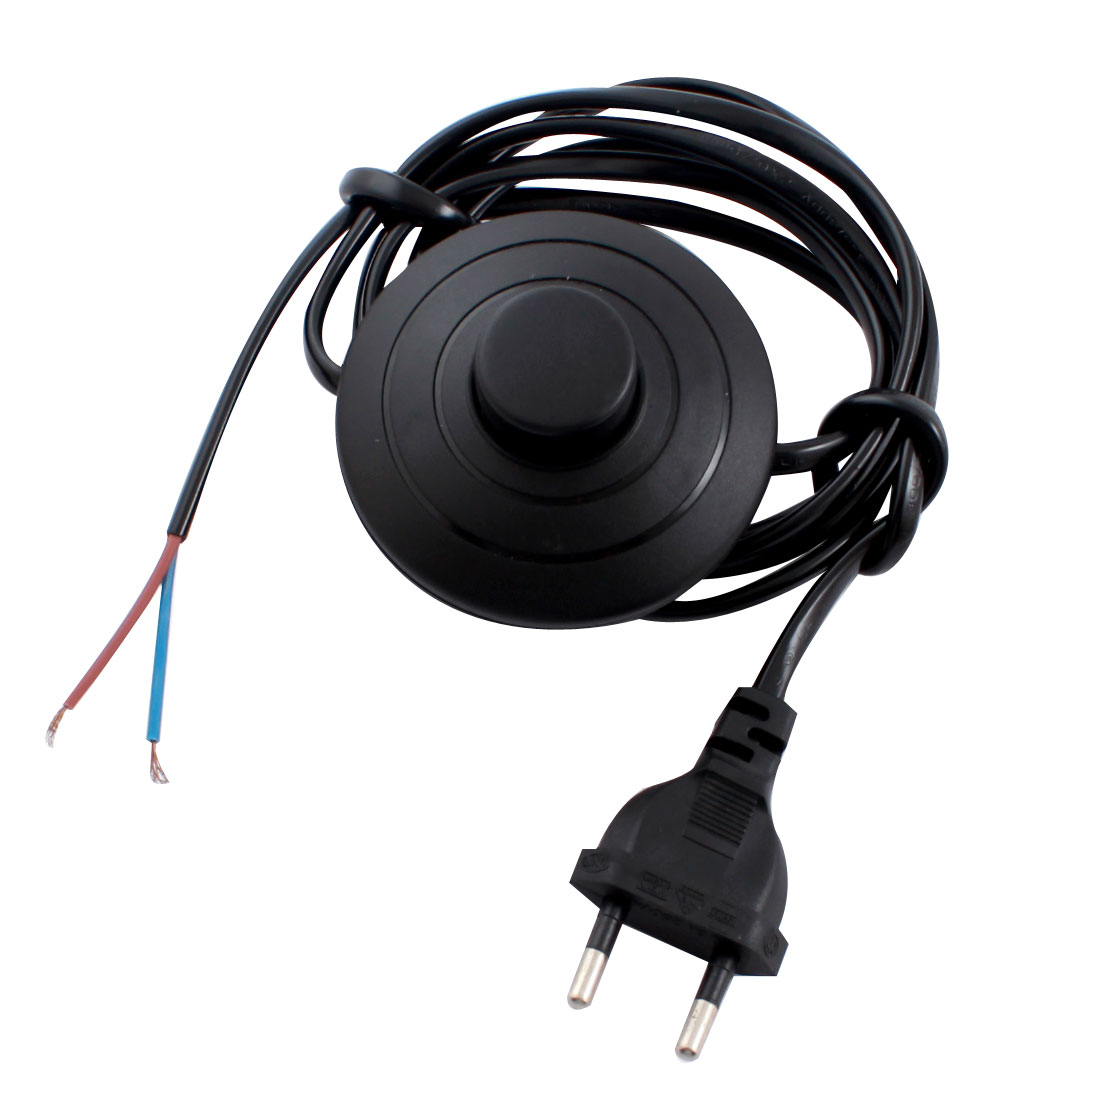 2Pcs Black Round AC 125V 3A AC 250V 2.5A EU Plug On-Off Light Power Step On Foot Switch 1.8M